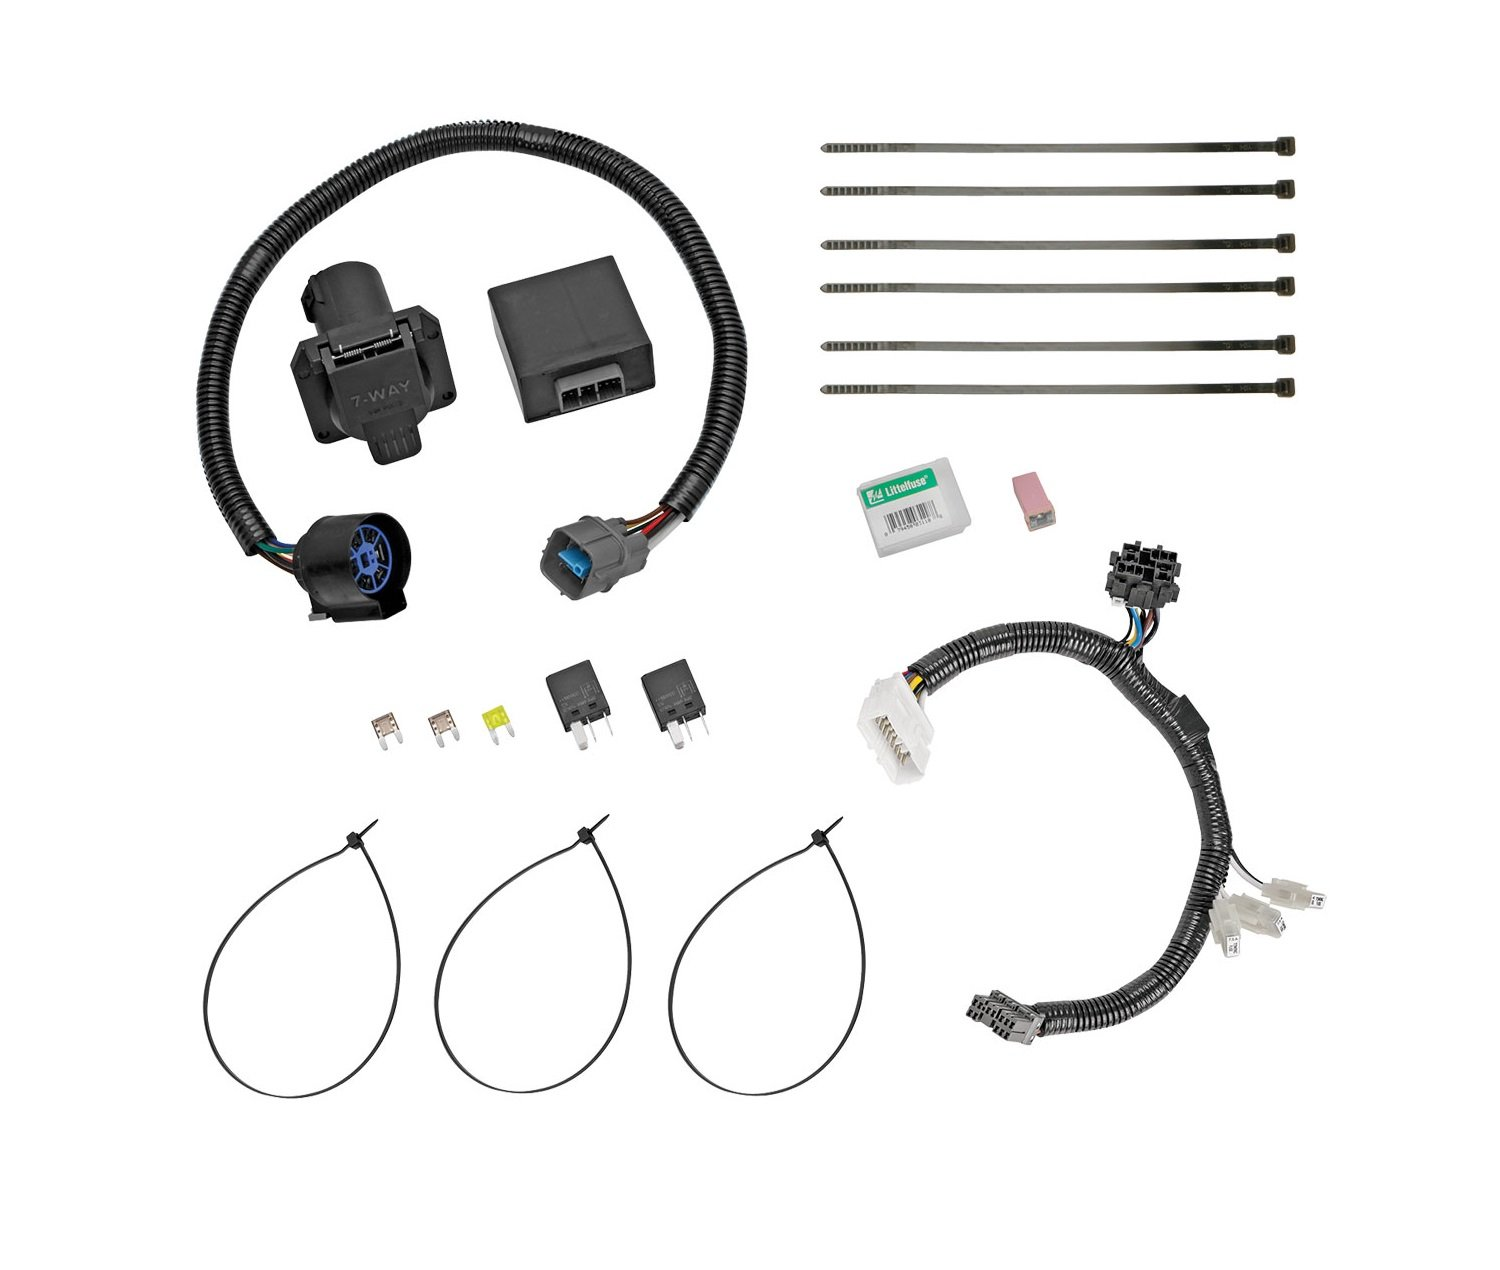 Tow Ready 118265 Trailer Wiring Connector Kit For Honda Pilot Rail Diagram Diy Teardrop Kits Amazon Canada